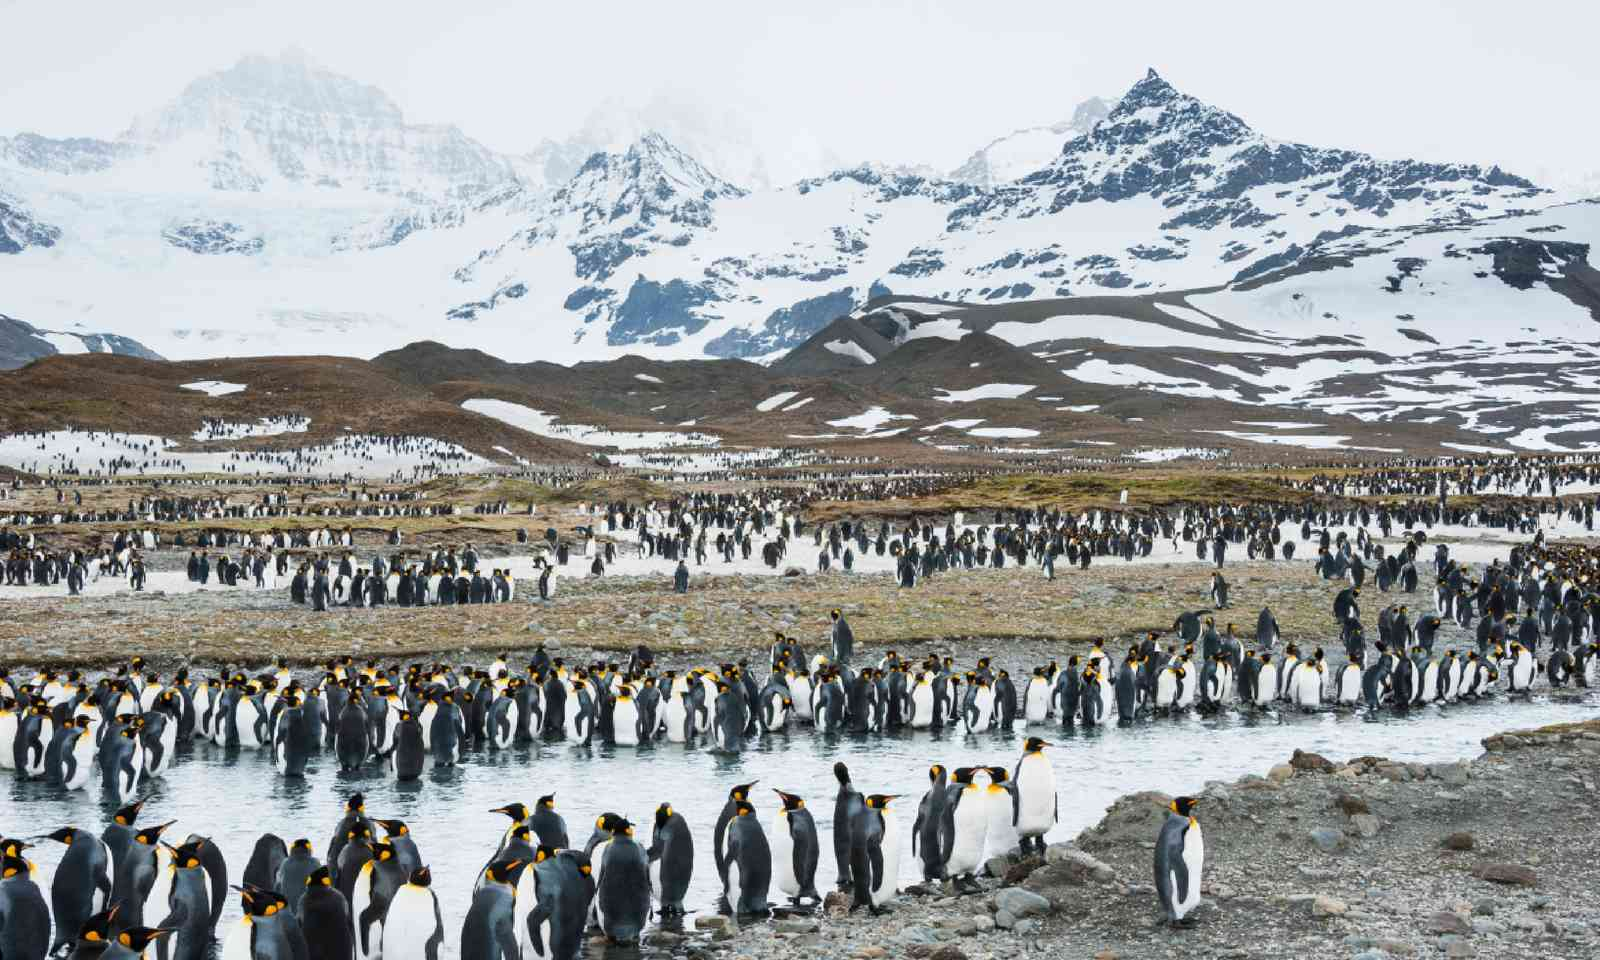 Colony of king penguins in South Georgia, Antarctica (Shutterstock)